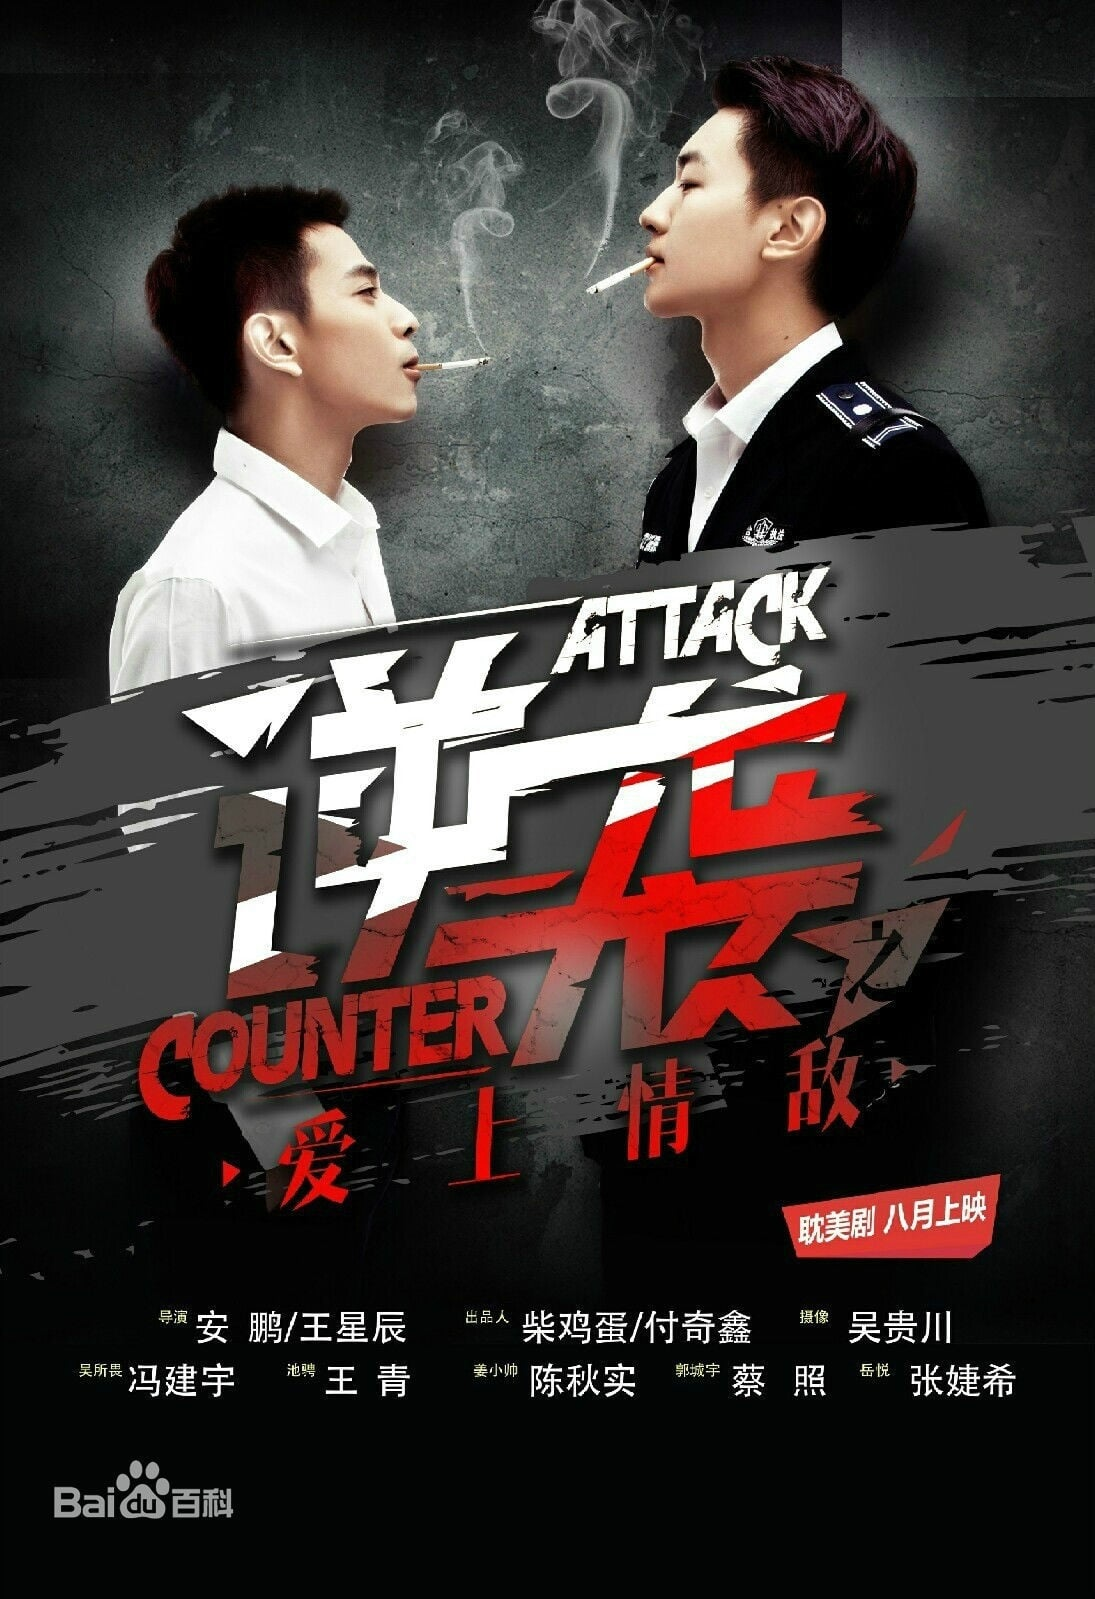 Counter Attack (2015)